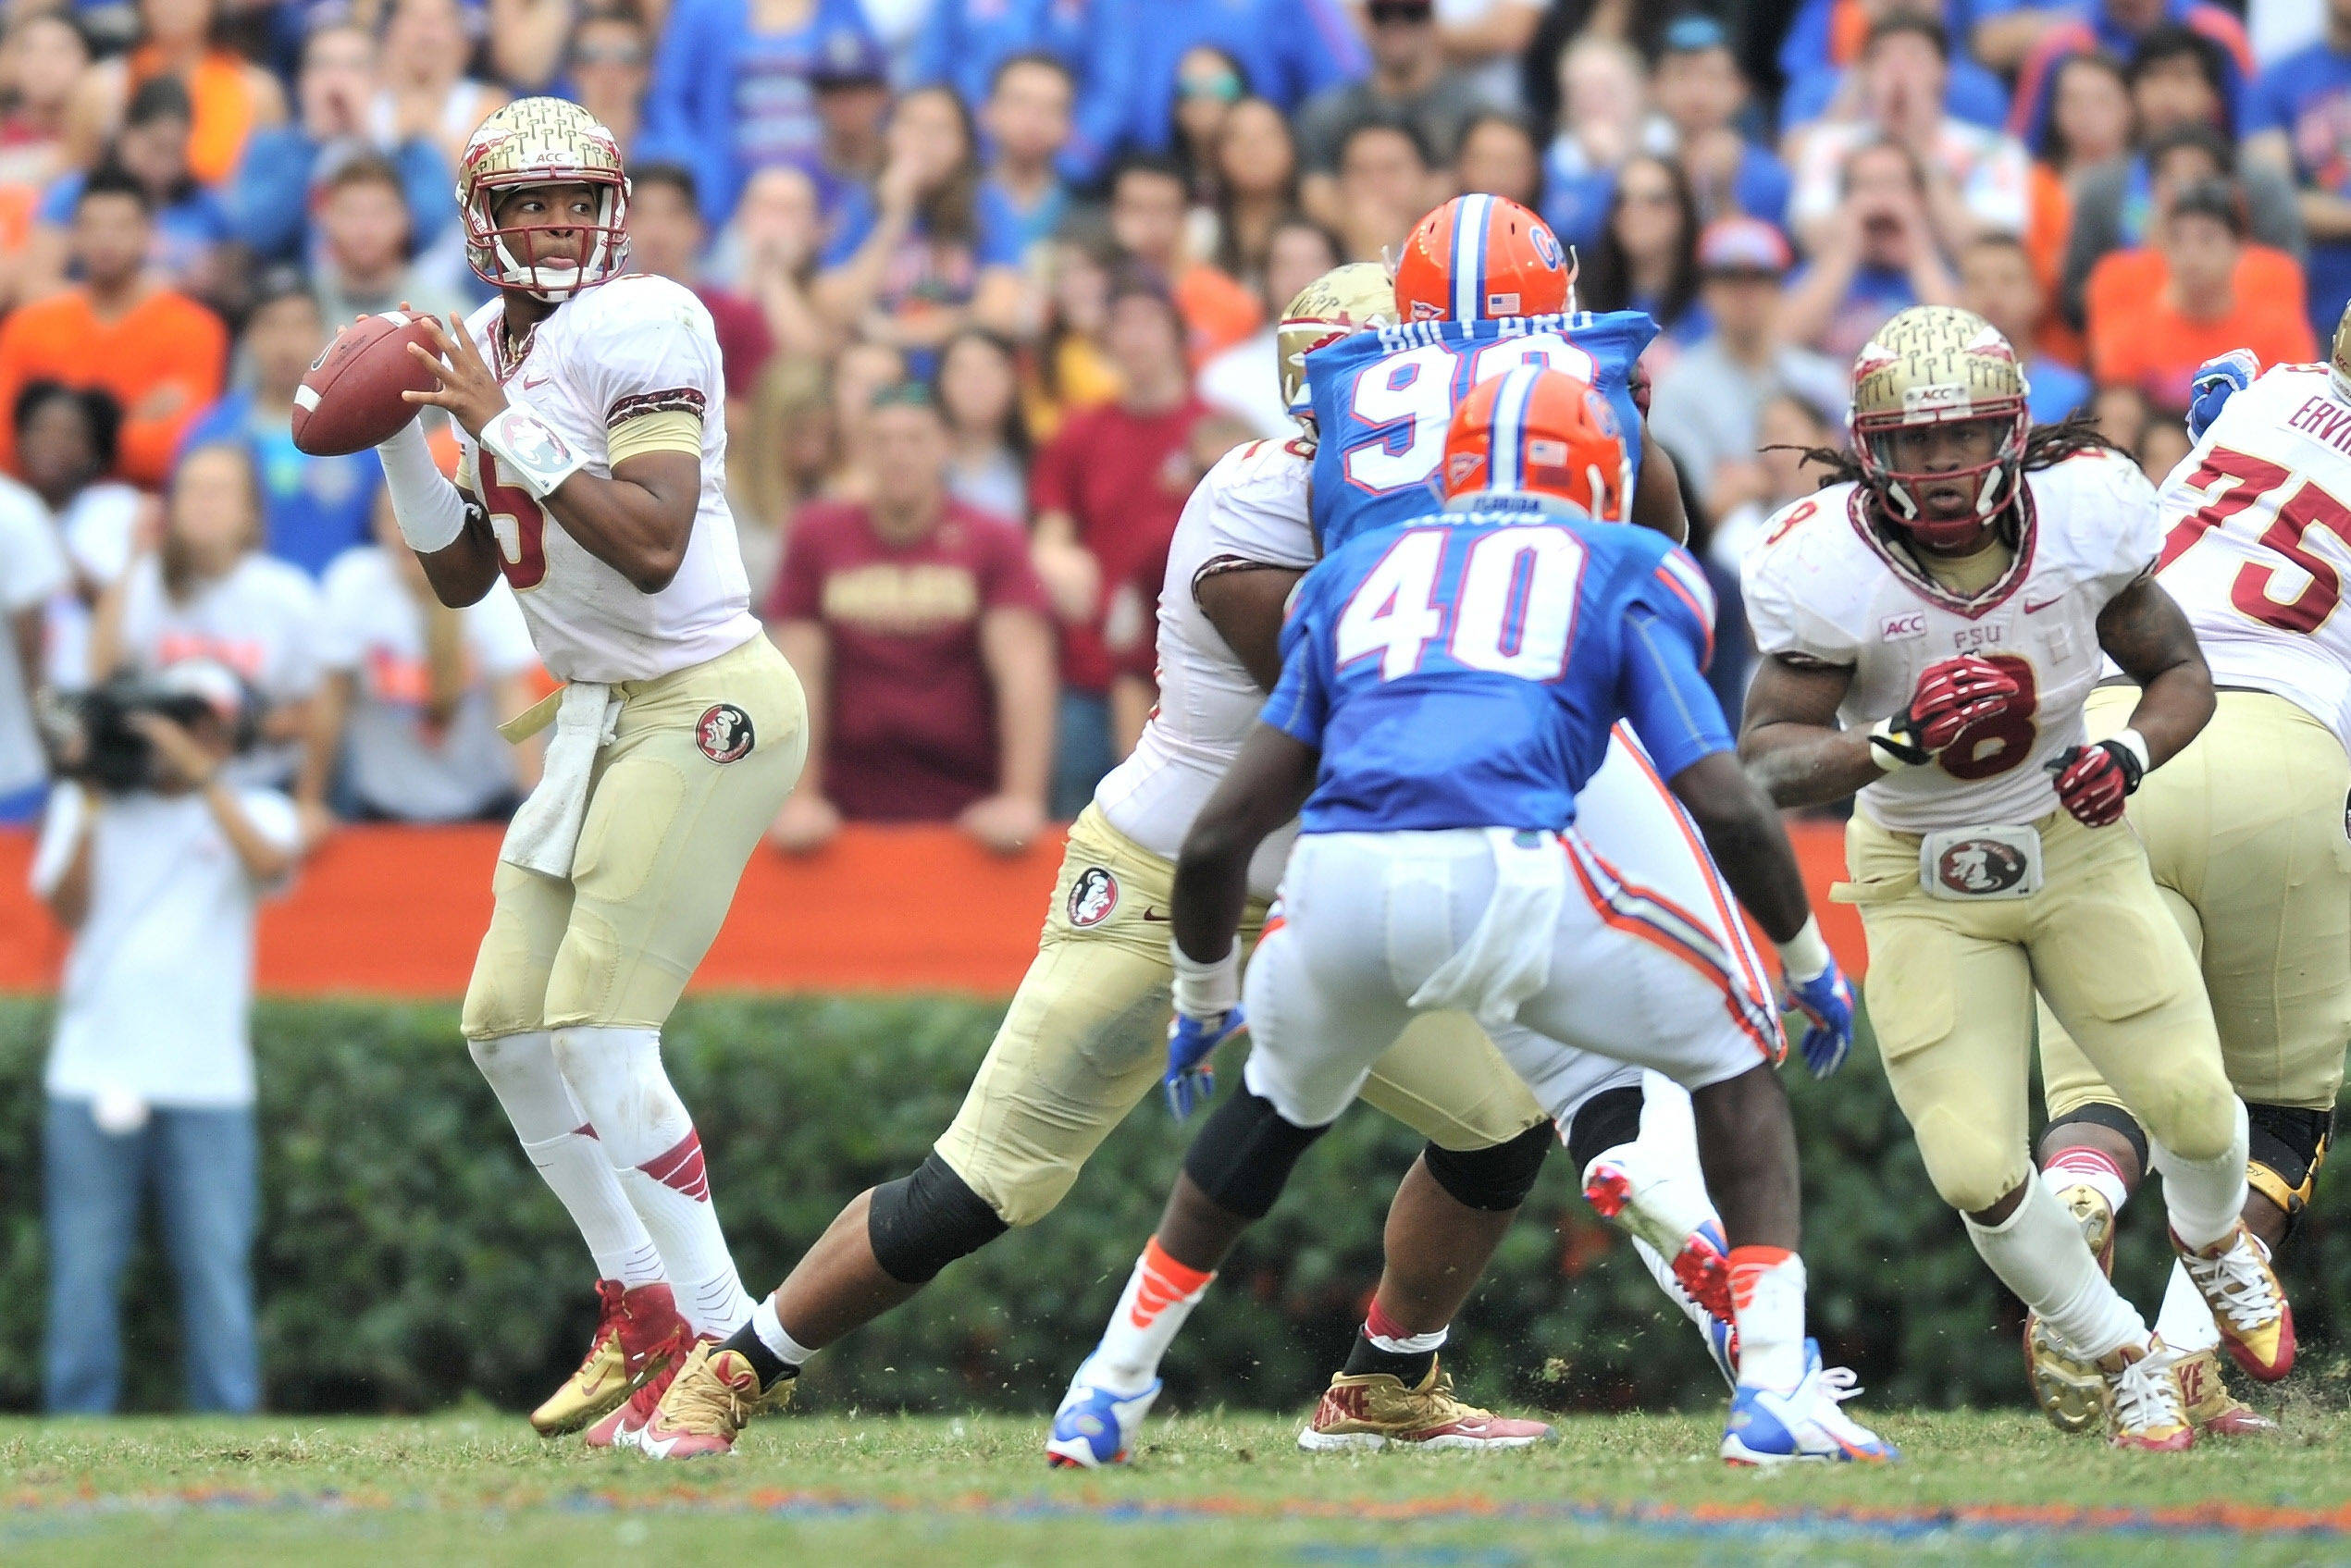 Jameis Winston (5) throws a pass. Mandatory Credit: Steve Mitchell-USA TODAY Sports